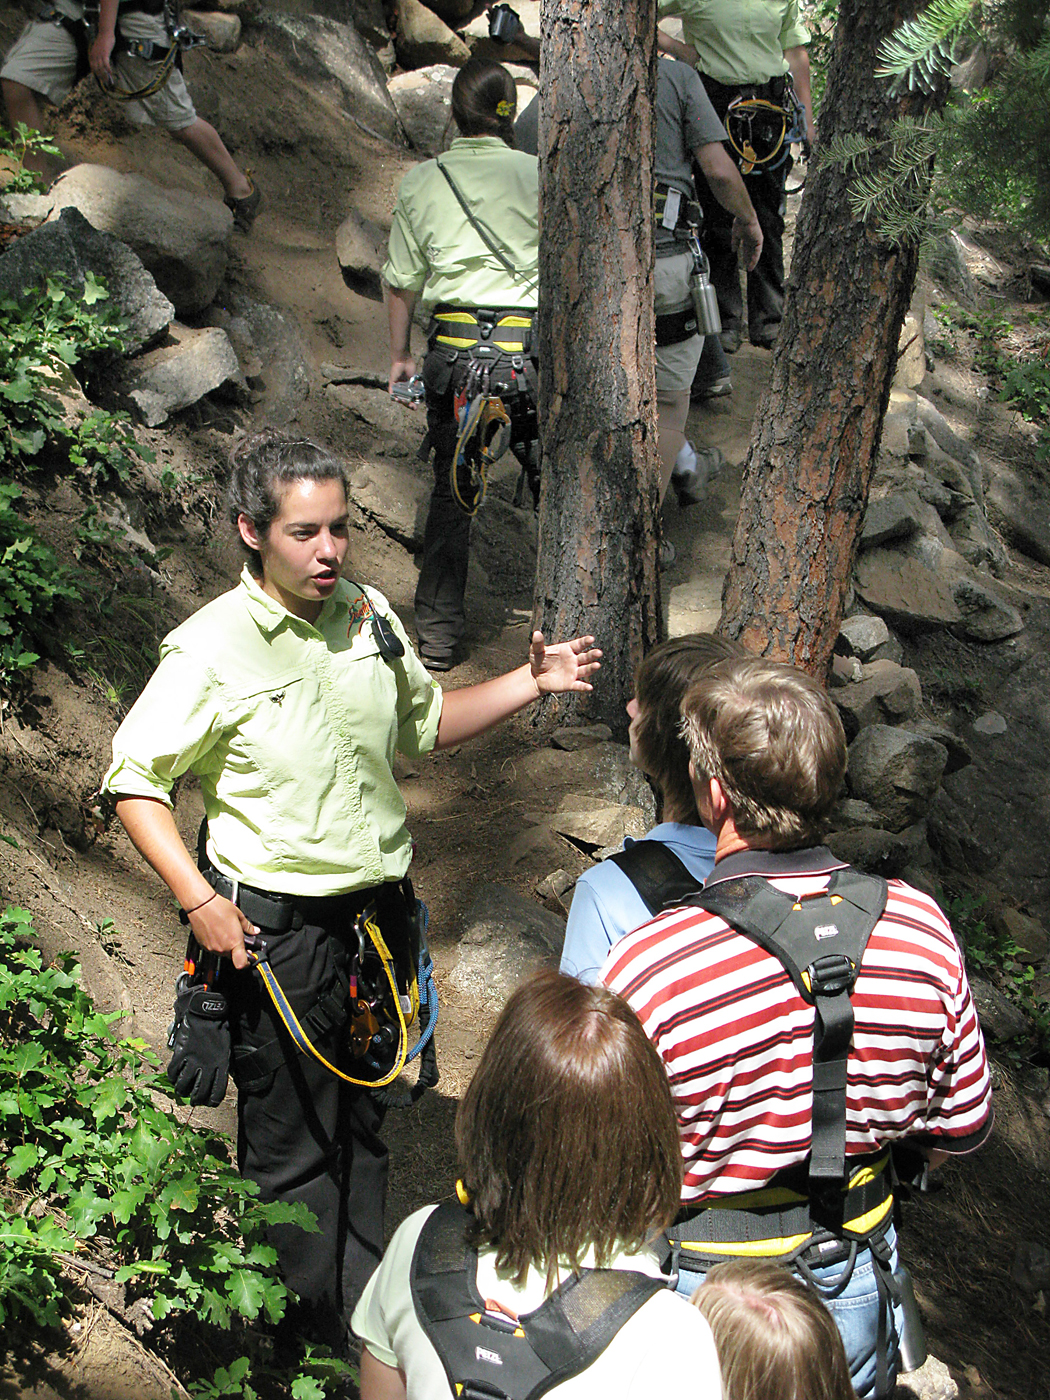 A Soaring Tree Top Adventure Sky Ranger explains safety procedures to zipliners.